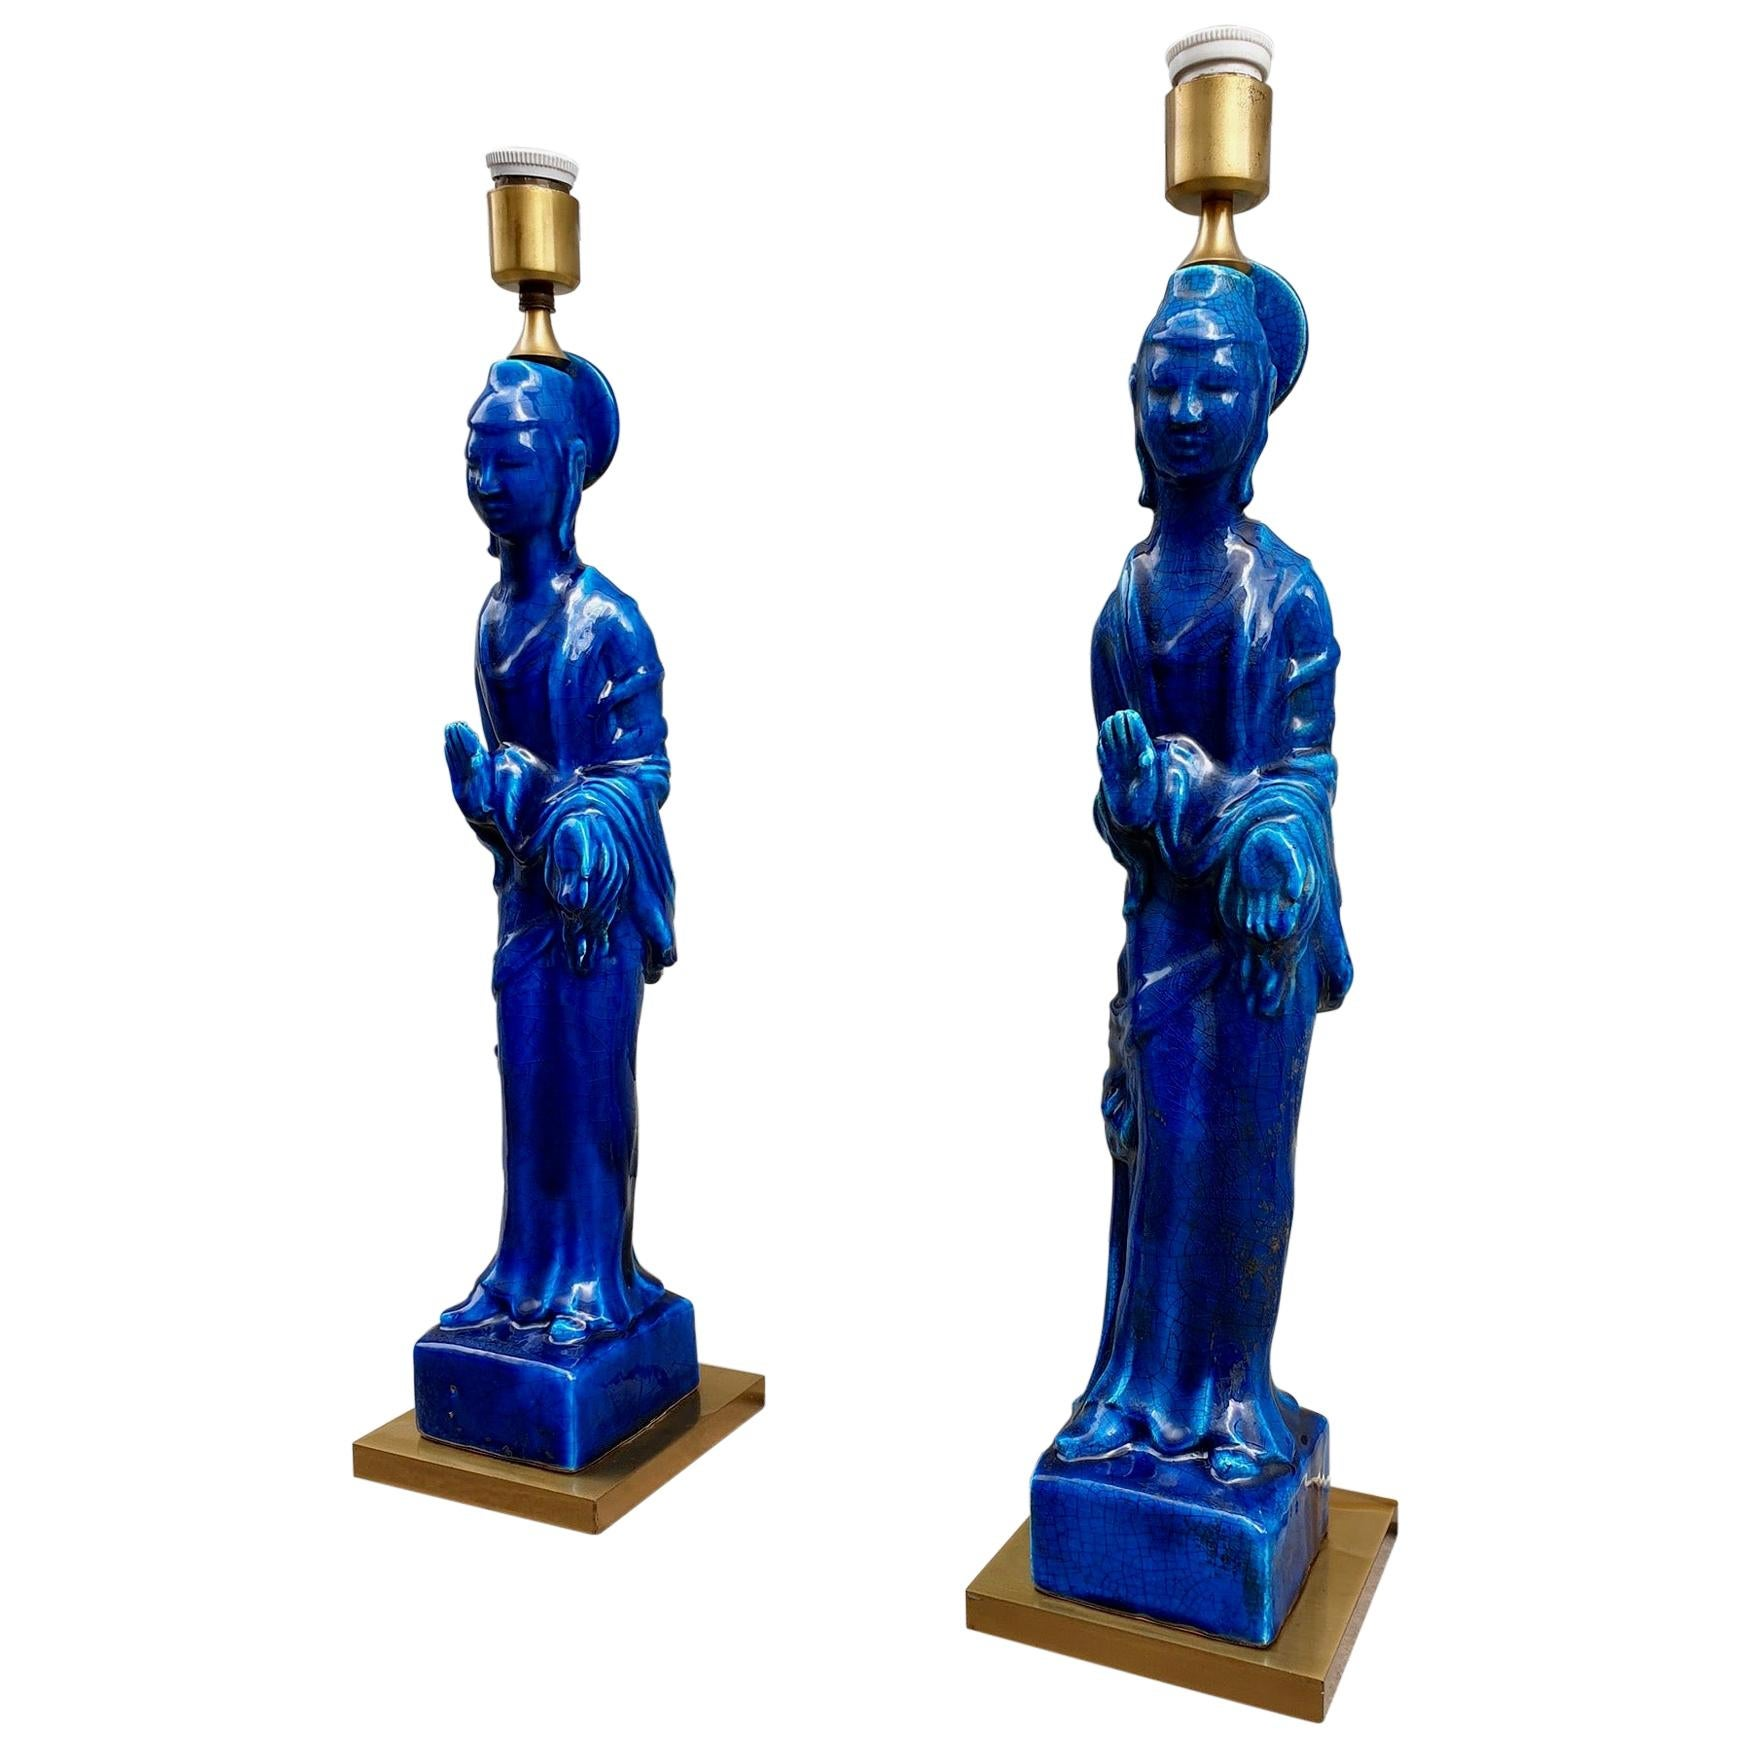 Pair of Hollywood Regency Standing Buddha Ceramic Table Lamps by Ugo Zaccagnini